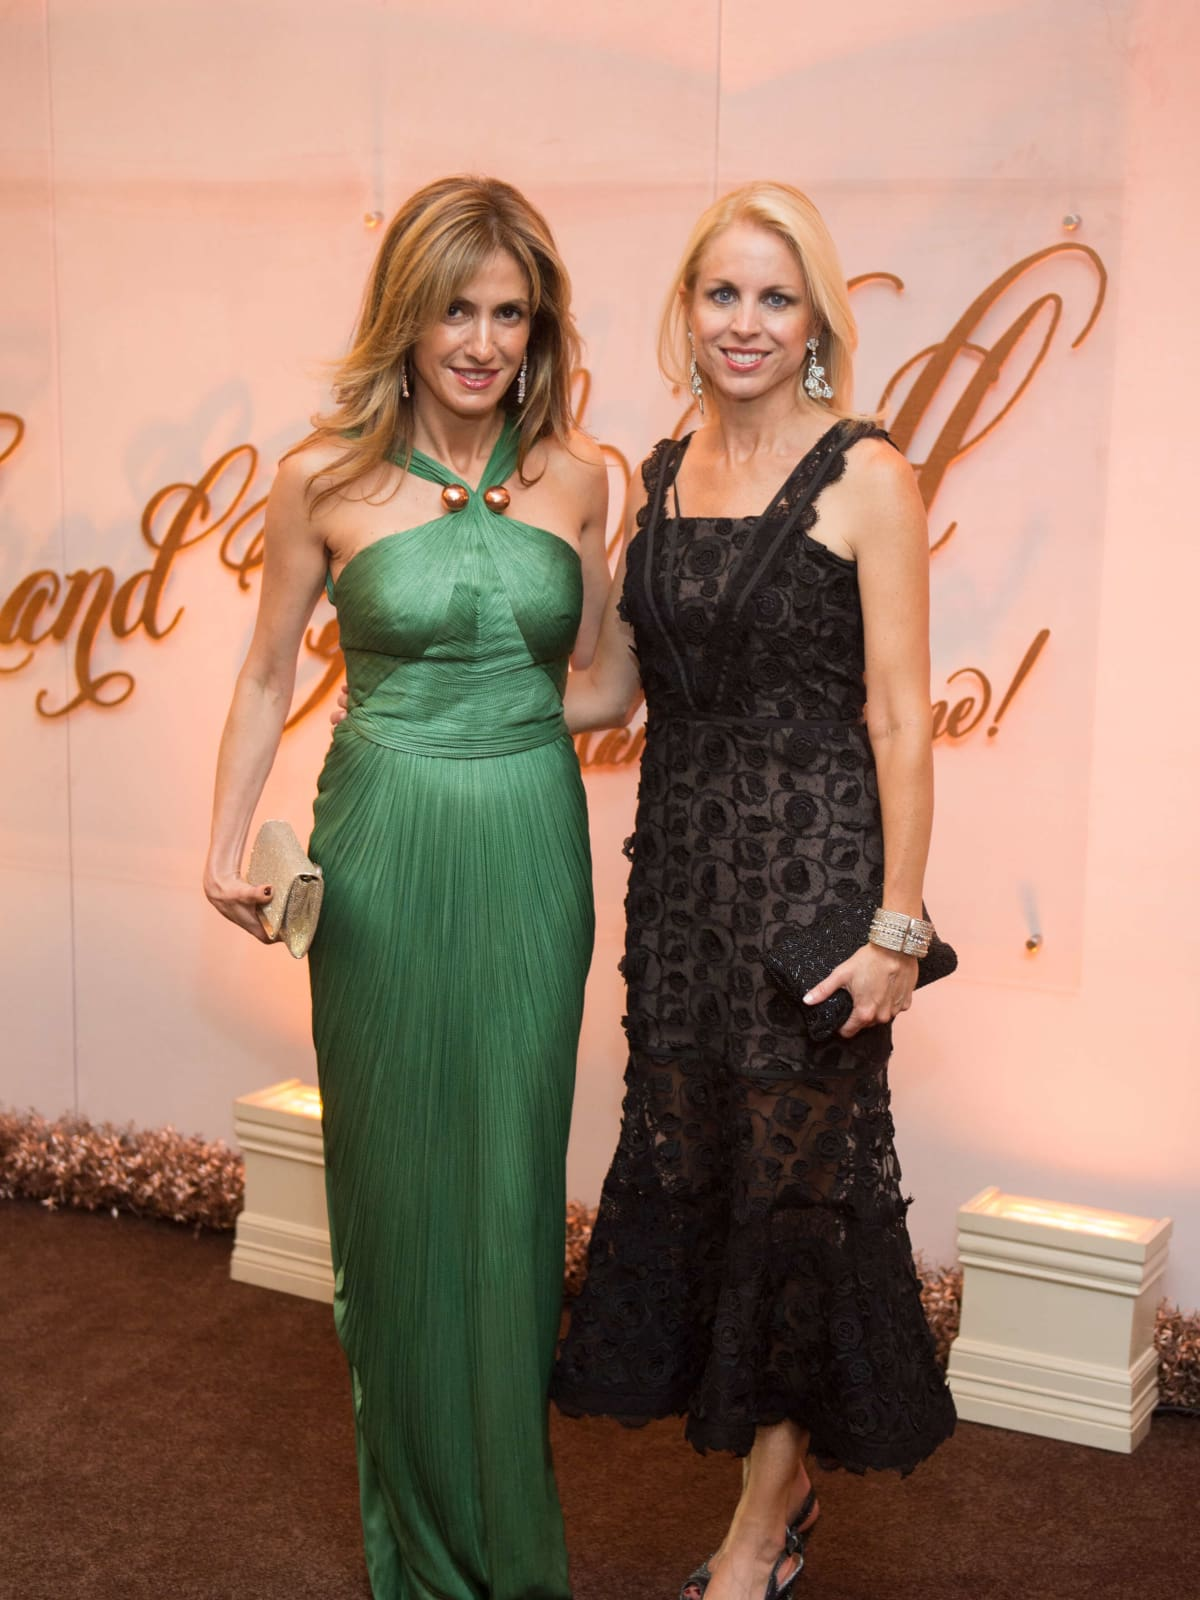 Sima Ladjevardian, Martha Britton at Museum of Fine Arts Grand Gala Ball